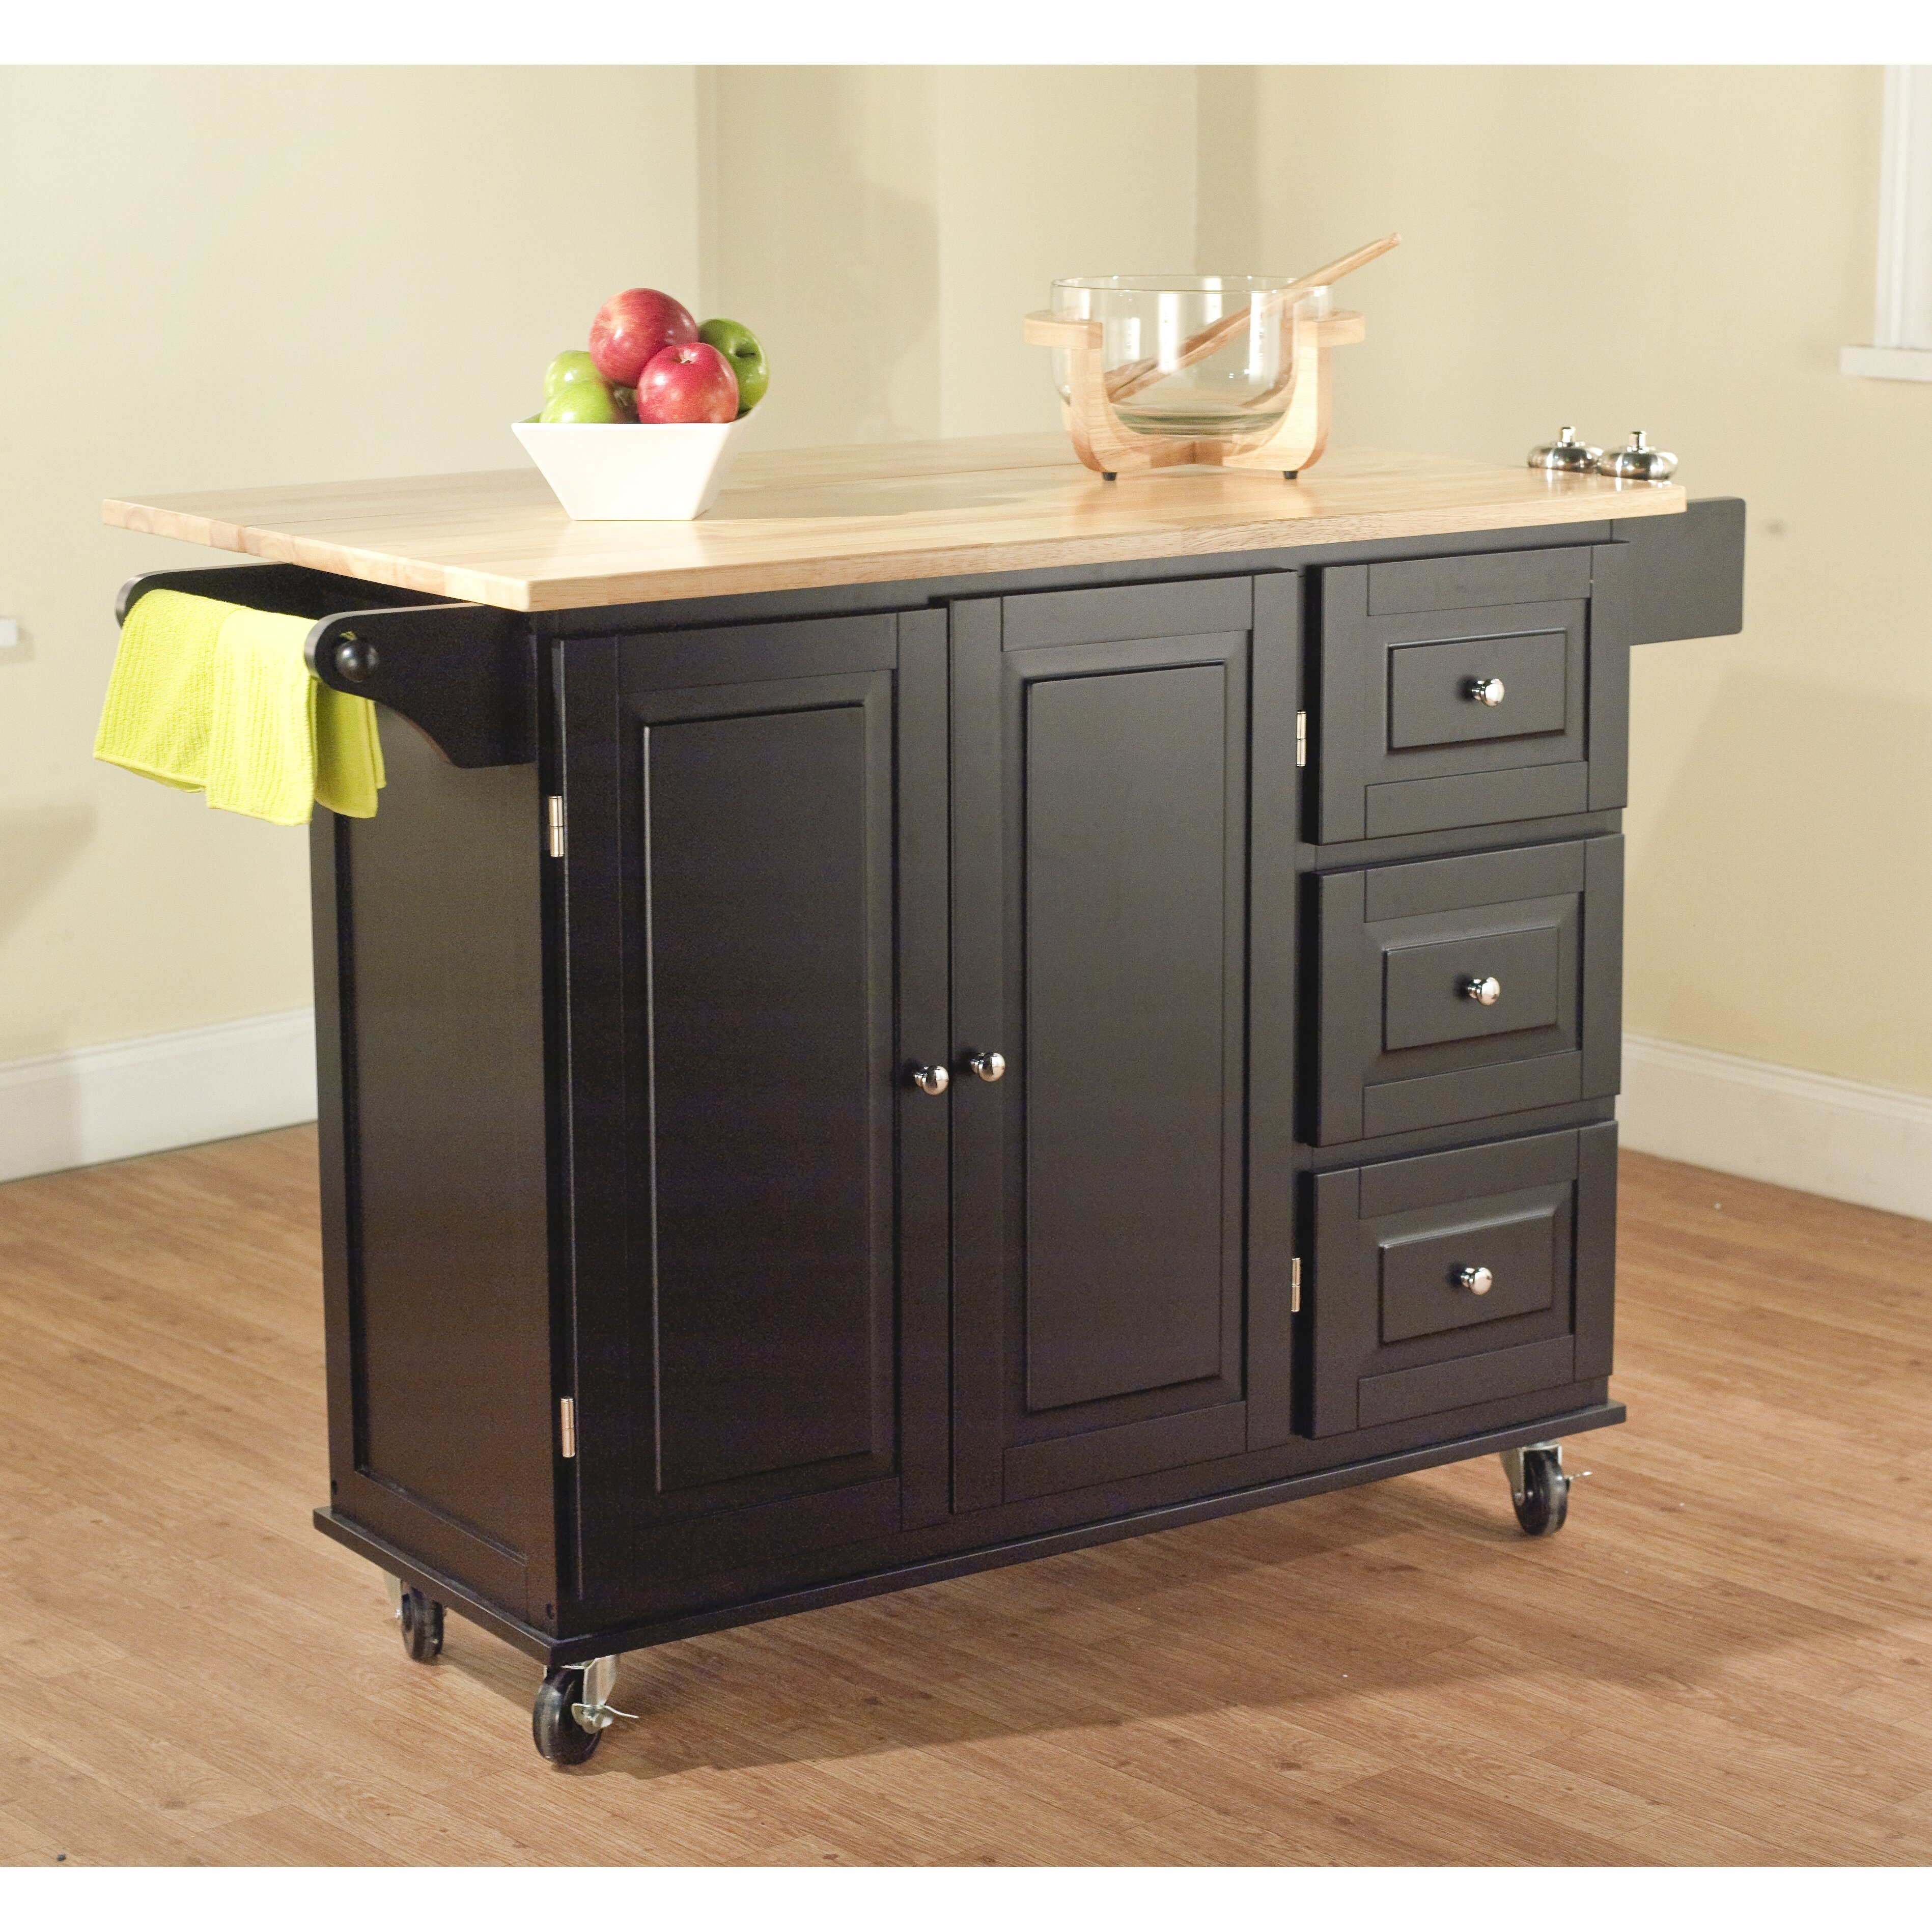 Darby Home Co Arpdale Kitchen Island with Wood Top ...